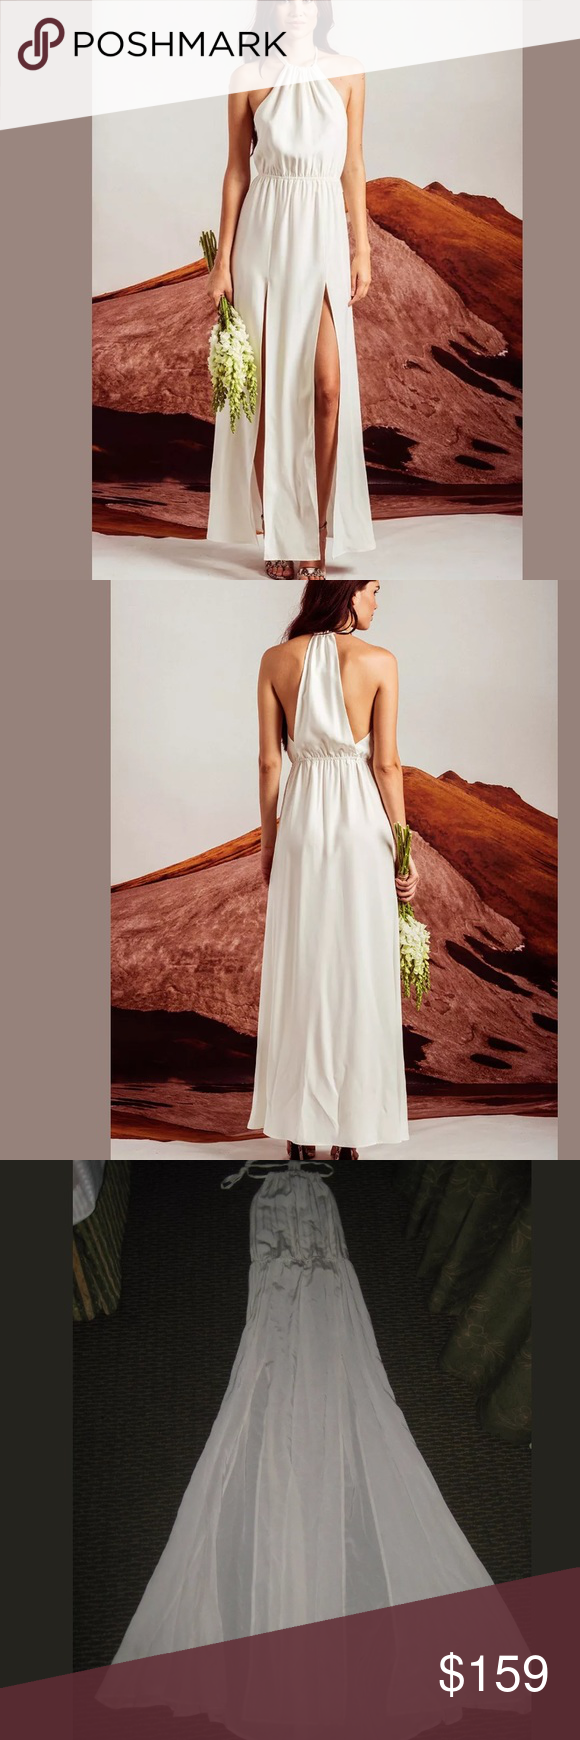 Stone cold fox onyx gown ivory silk charmeuse 2 for a simple yet stone cold fox onyx gown ivory silk charmeuse 2 for a simple yet elegant option for a bridal gown bridesmaid dress or any other formal situation ombrellifo Choice Image